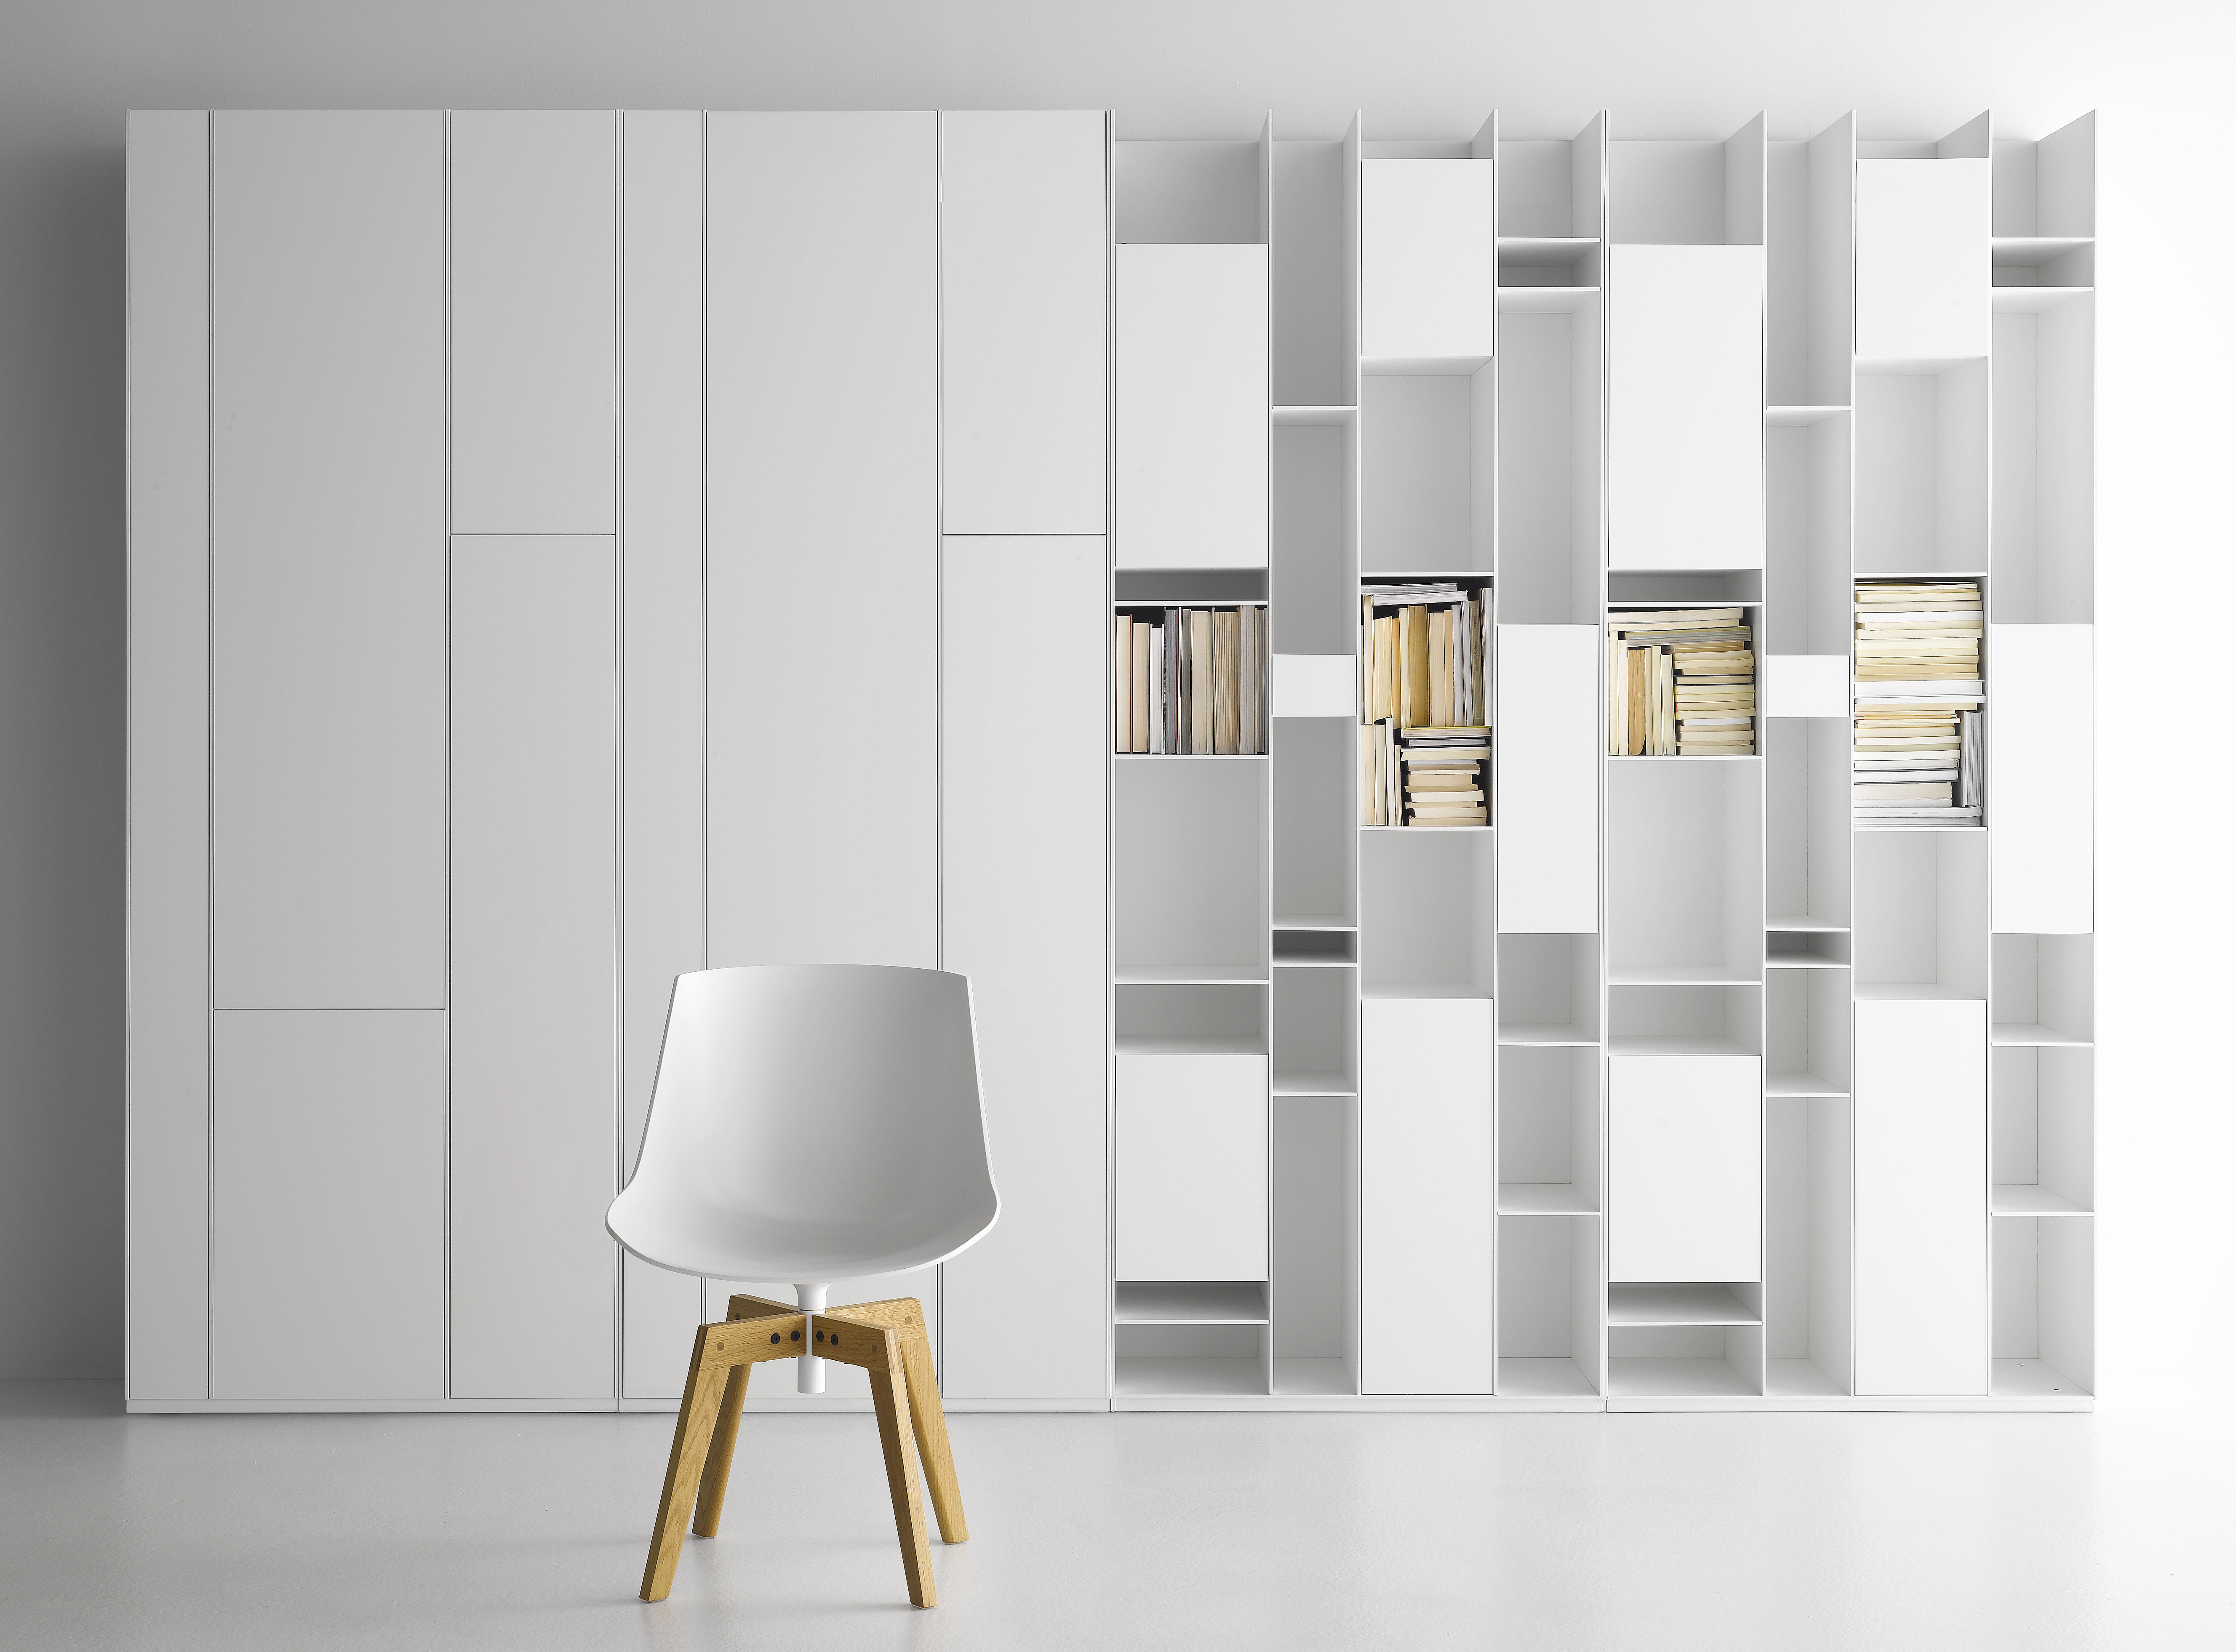 Wonderful image of  > Random Cabinet Bookcase Storage unit / Bookcase by MDF Italia with #5F4A2A color and 5310x3924 pixels